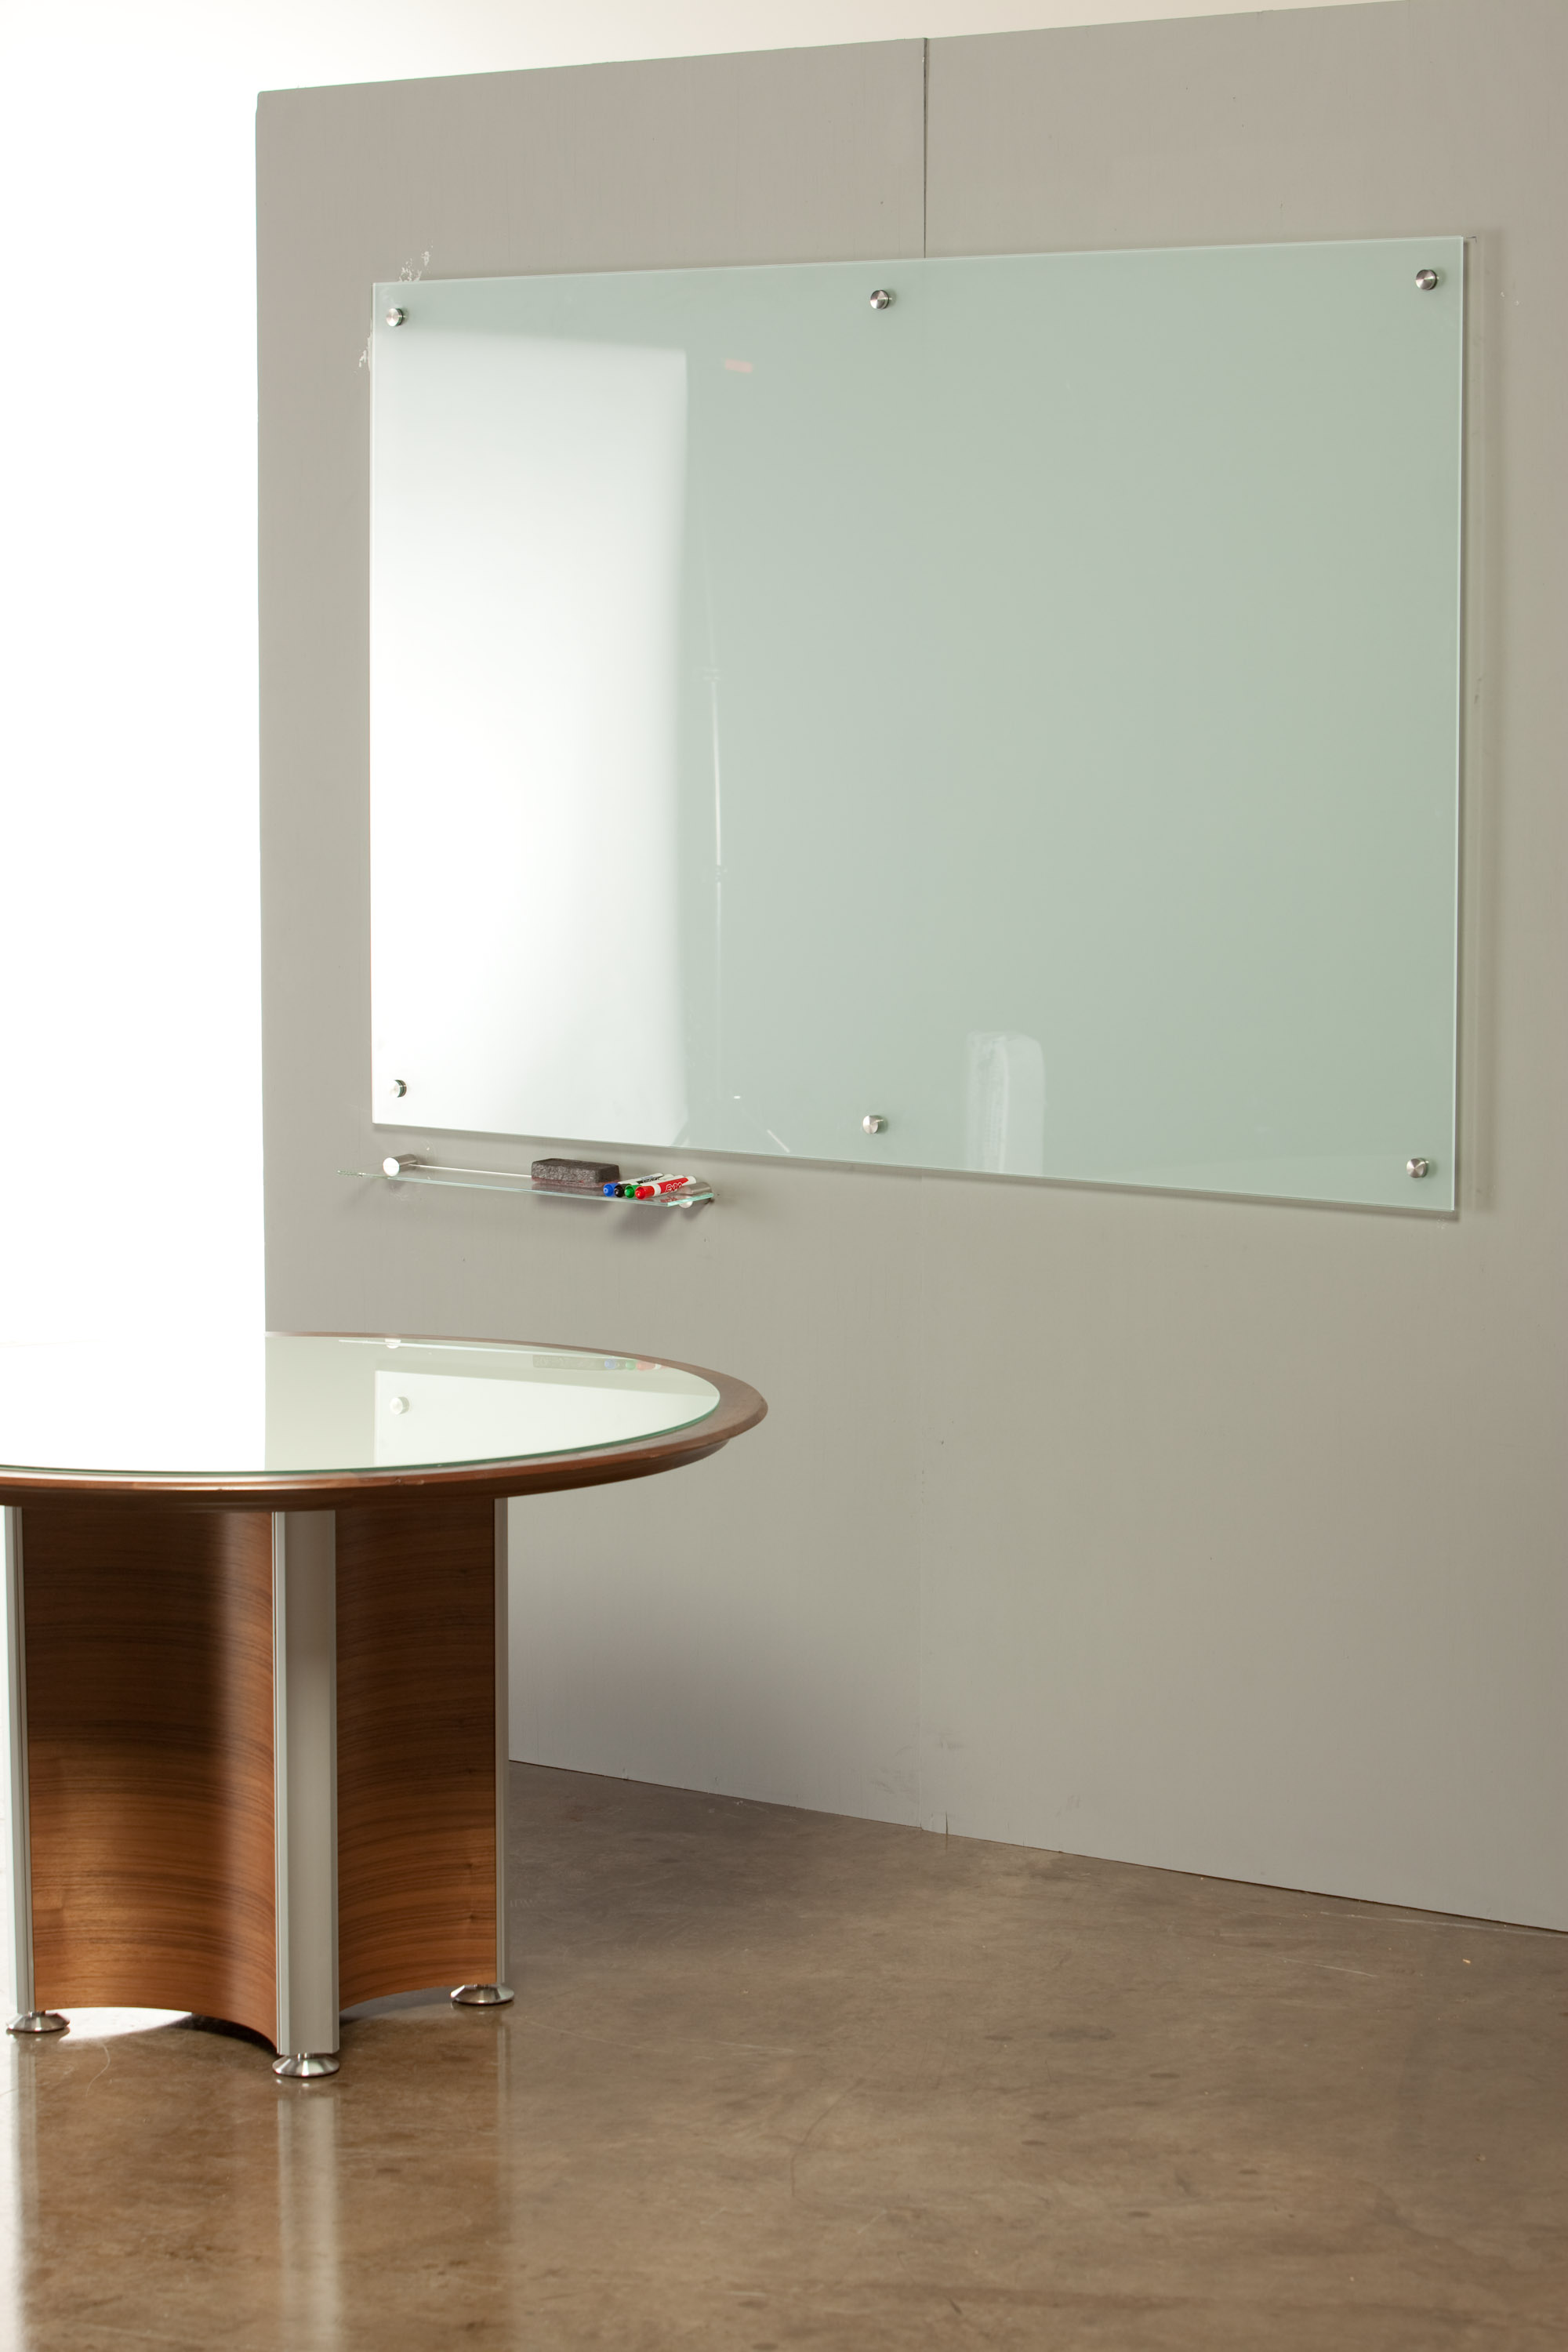 Whiteboard Glas How To Have Easy And Tidy Office With Glass Whiteboard Ikea With